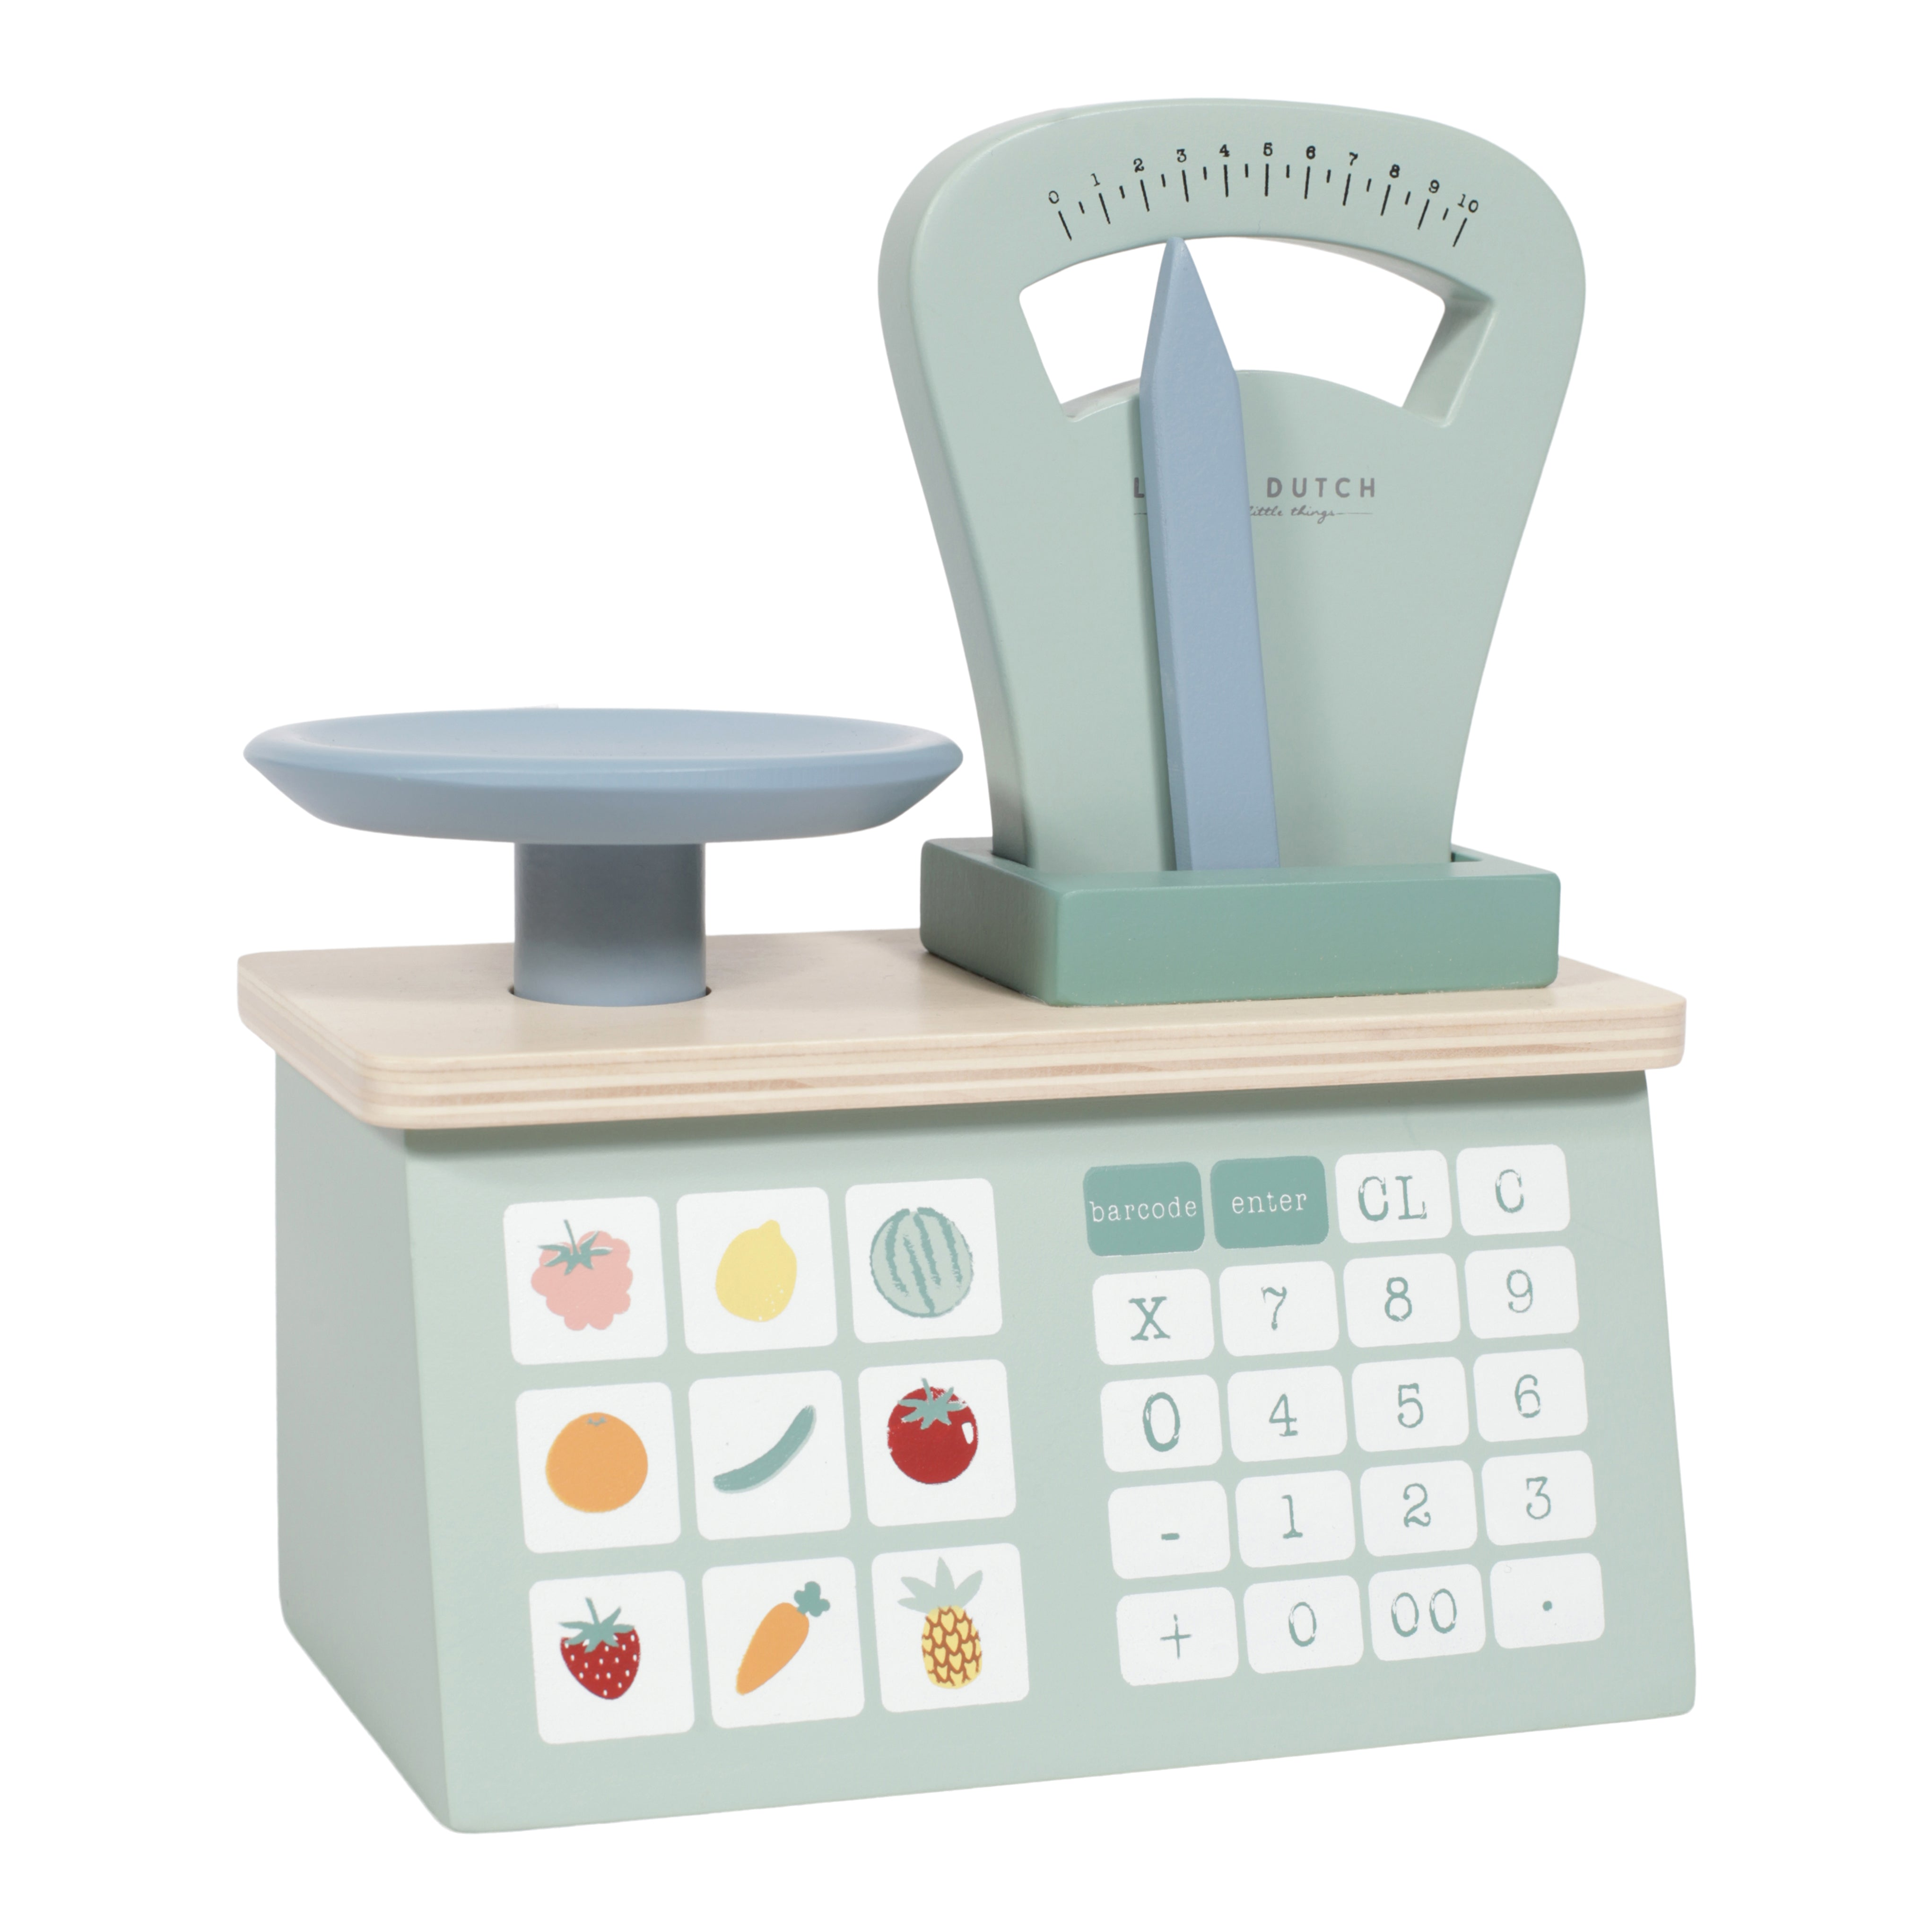 Toy weighing scales - LD